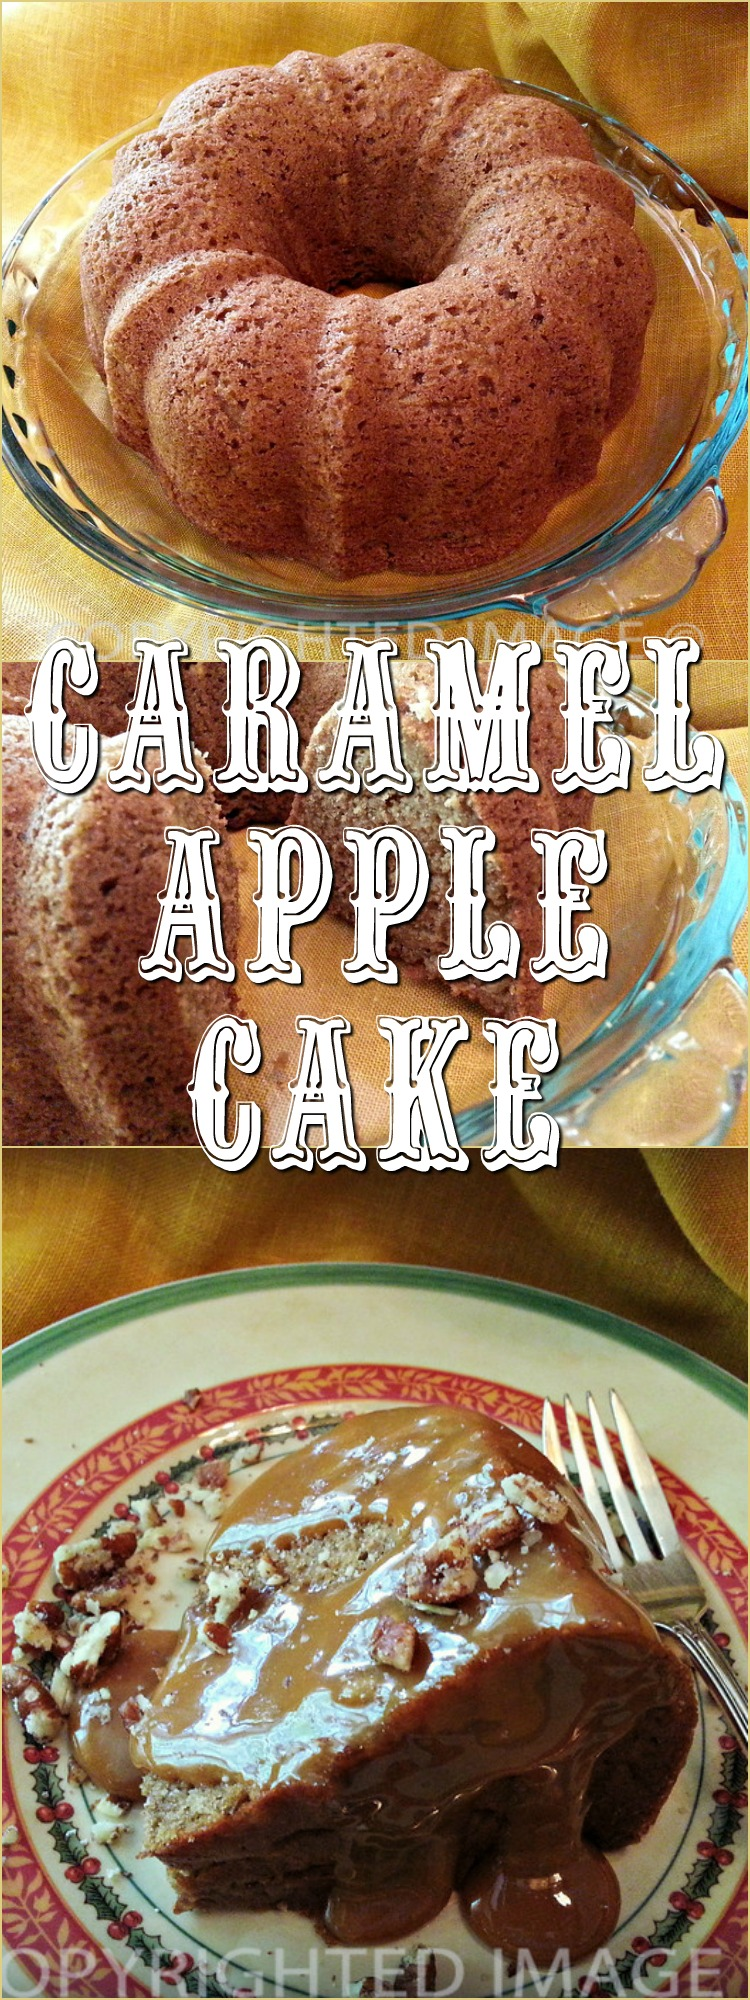 Made an easy caramel apple cake recipe from the Hillbilly Housewife's Just Dessert Cookbook. Cupcakes or cake - its quick & easy to prepare and super delicious!